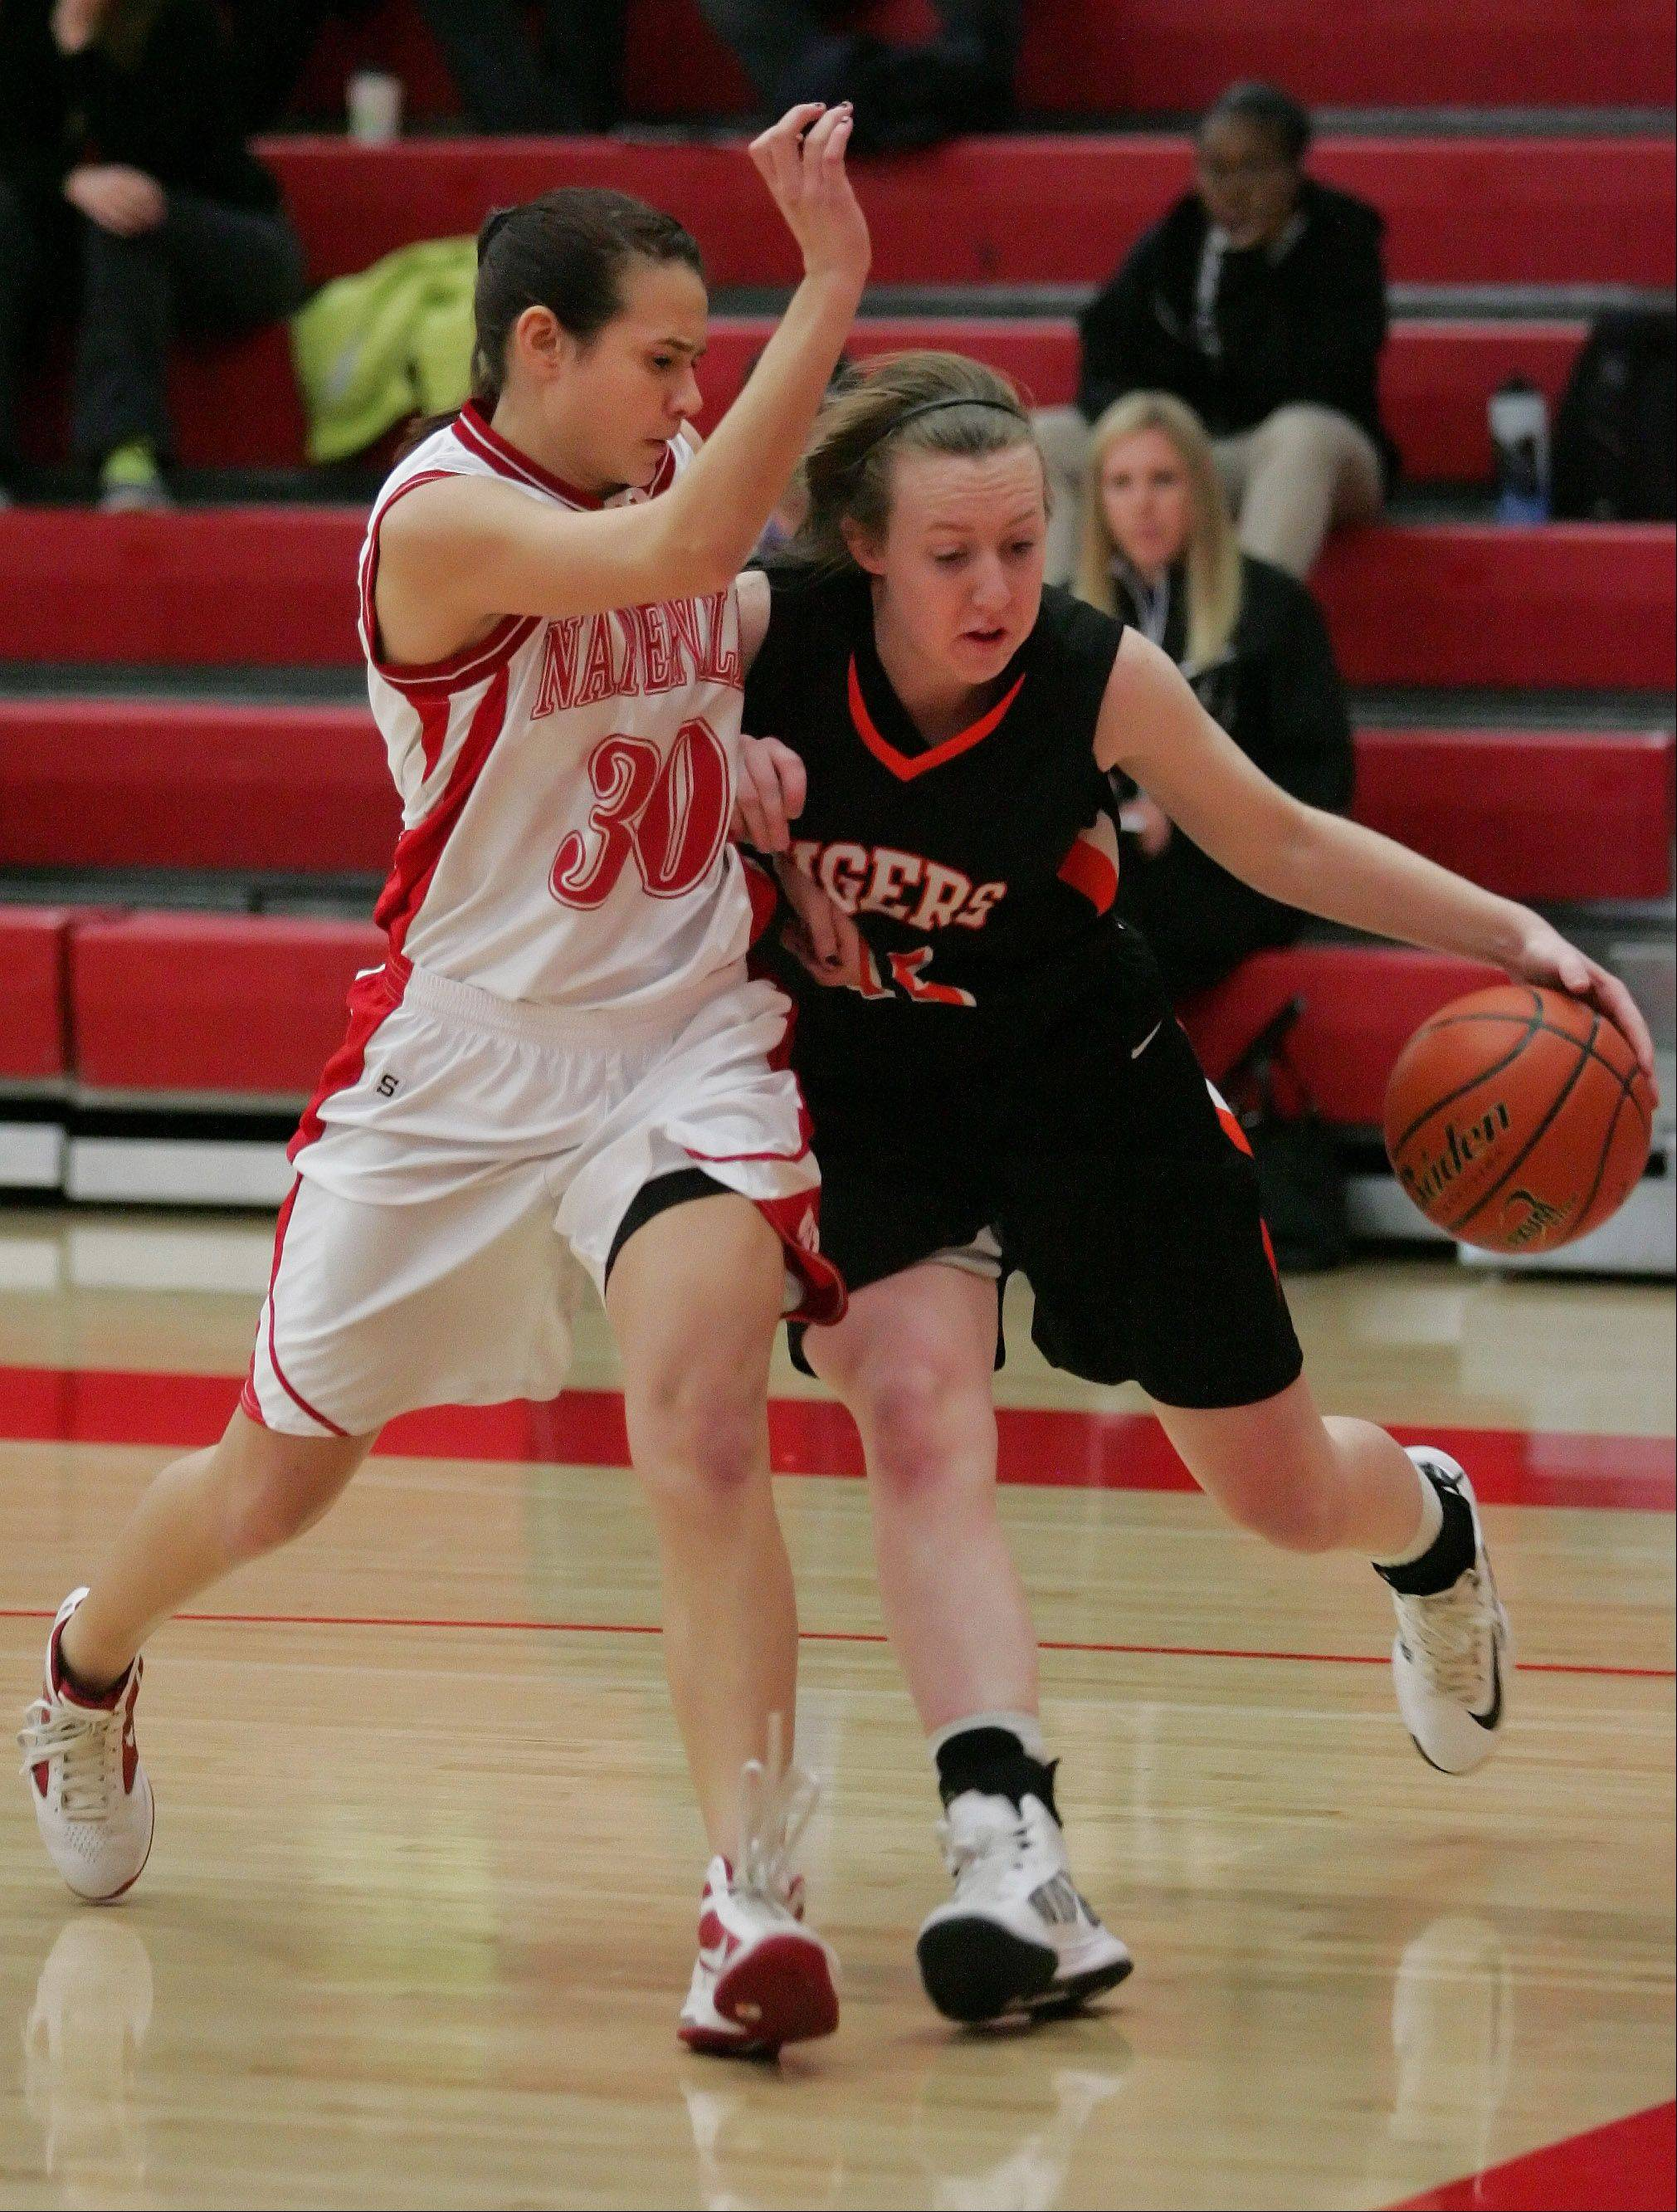 Meghan Waldron of Wheaton Warrenville South, right, drives the ball around Shannon Ryan of Naperville Central in girls basketball action on Tuesday in Naperville.